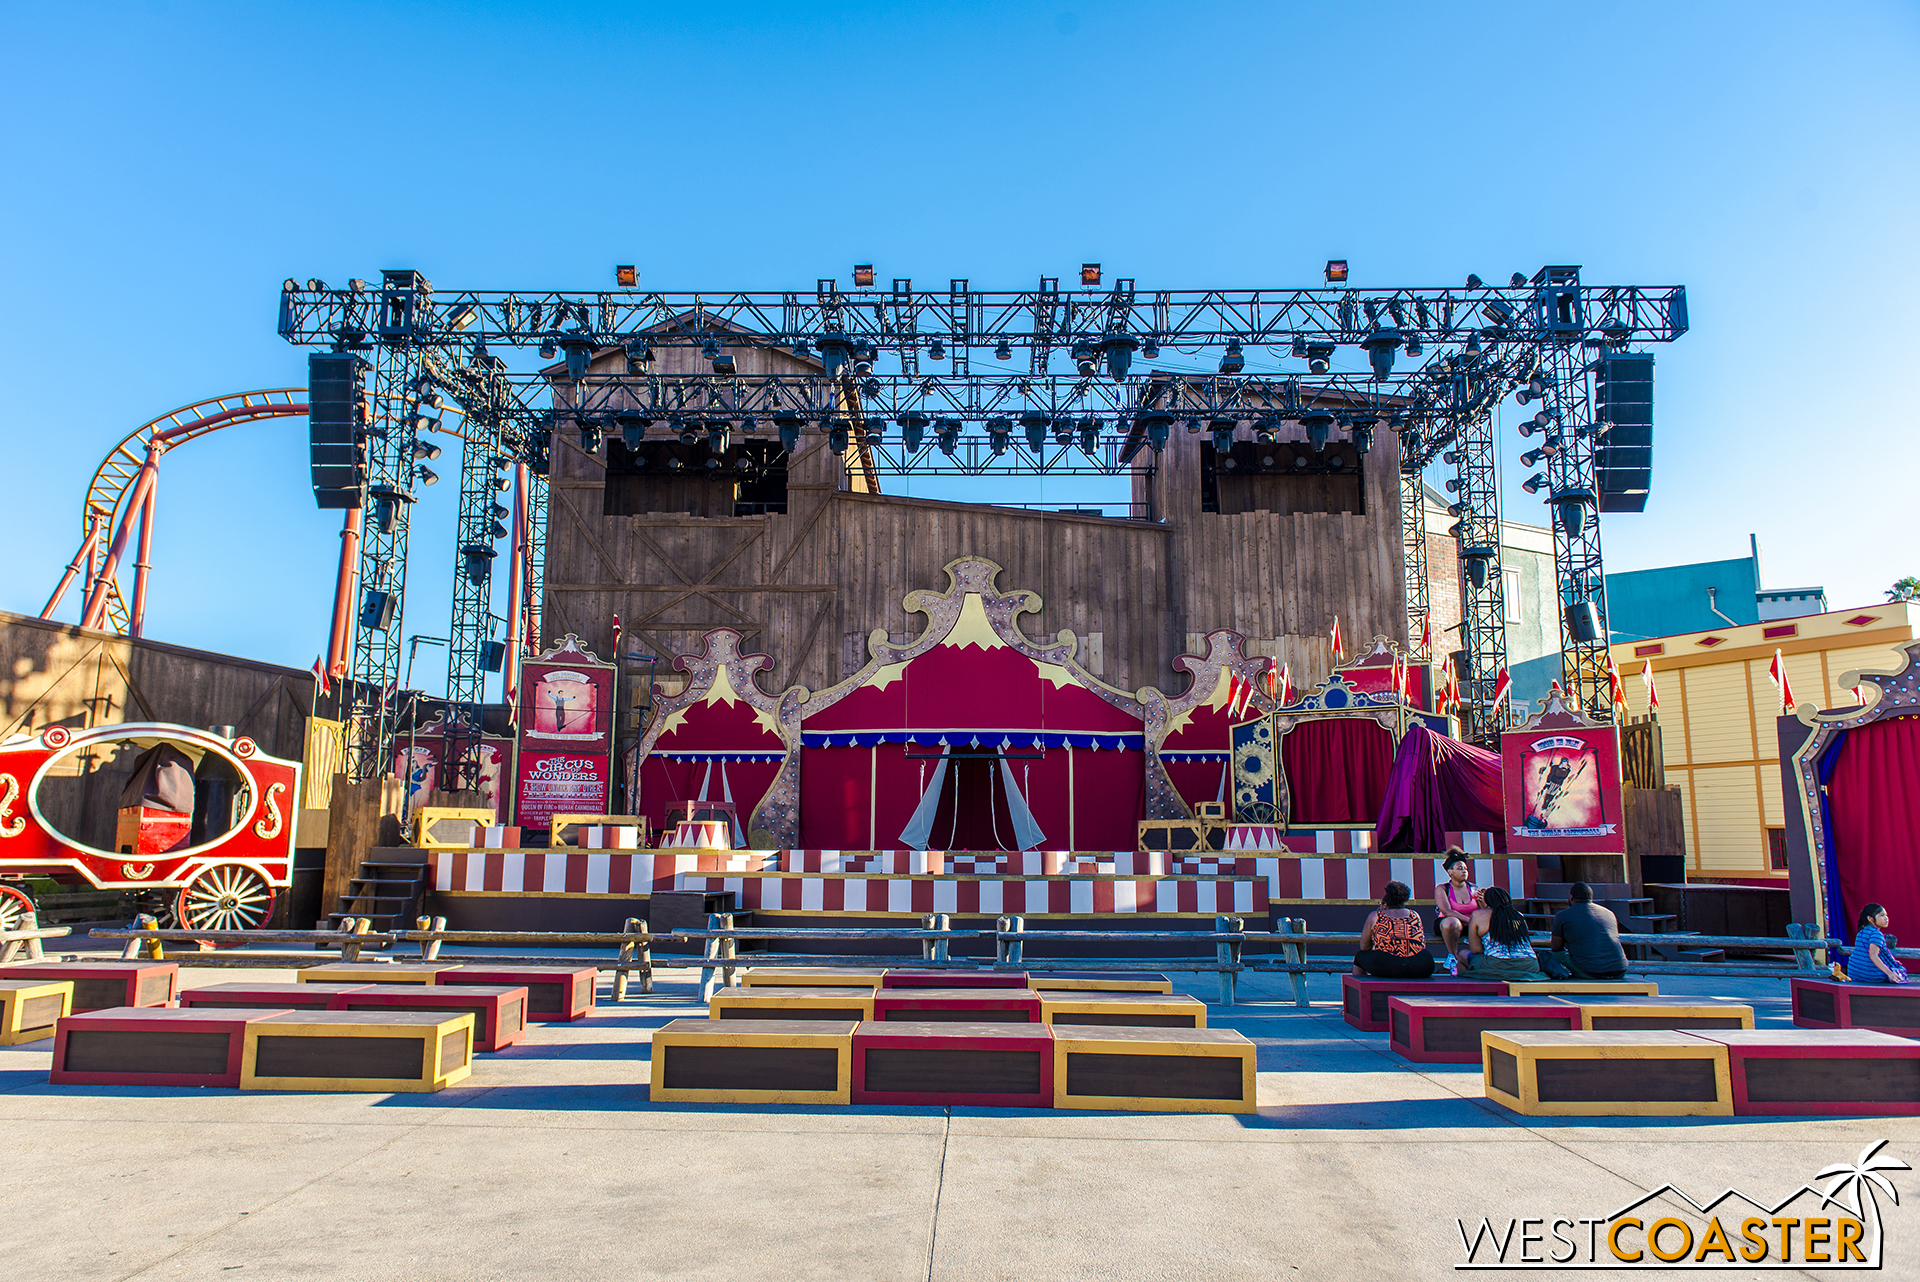 A circus show takes place at the Calico Stage on select evenings throughout the summer.